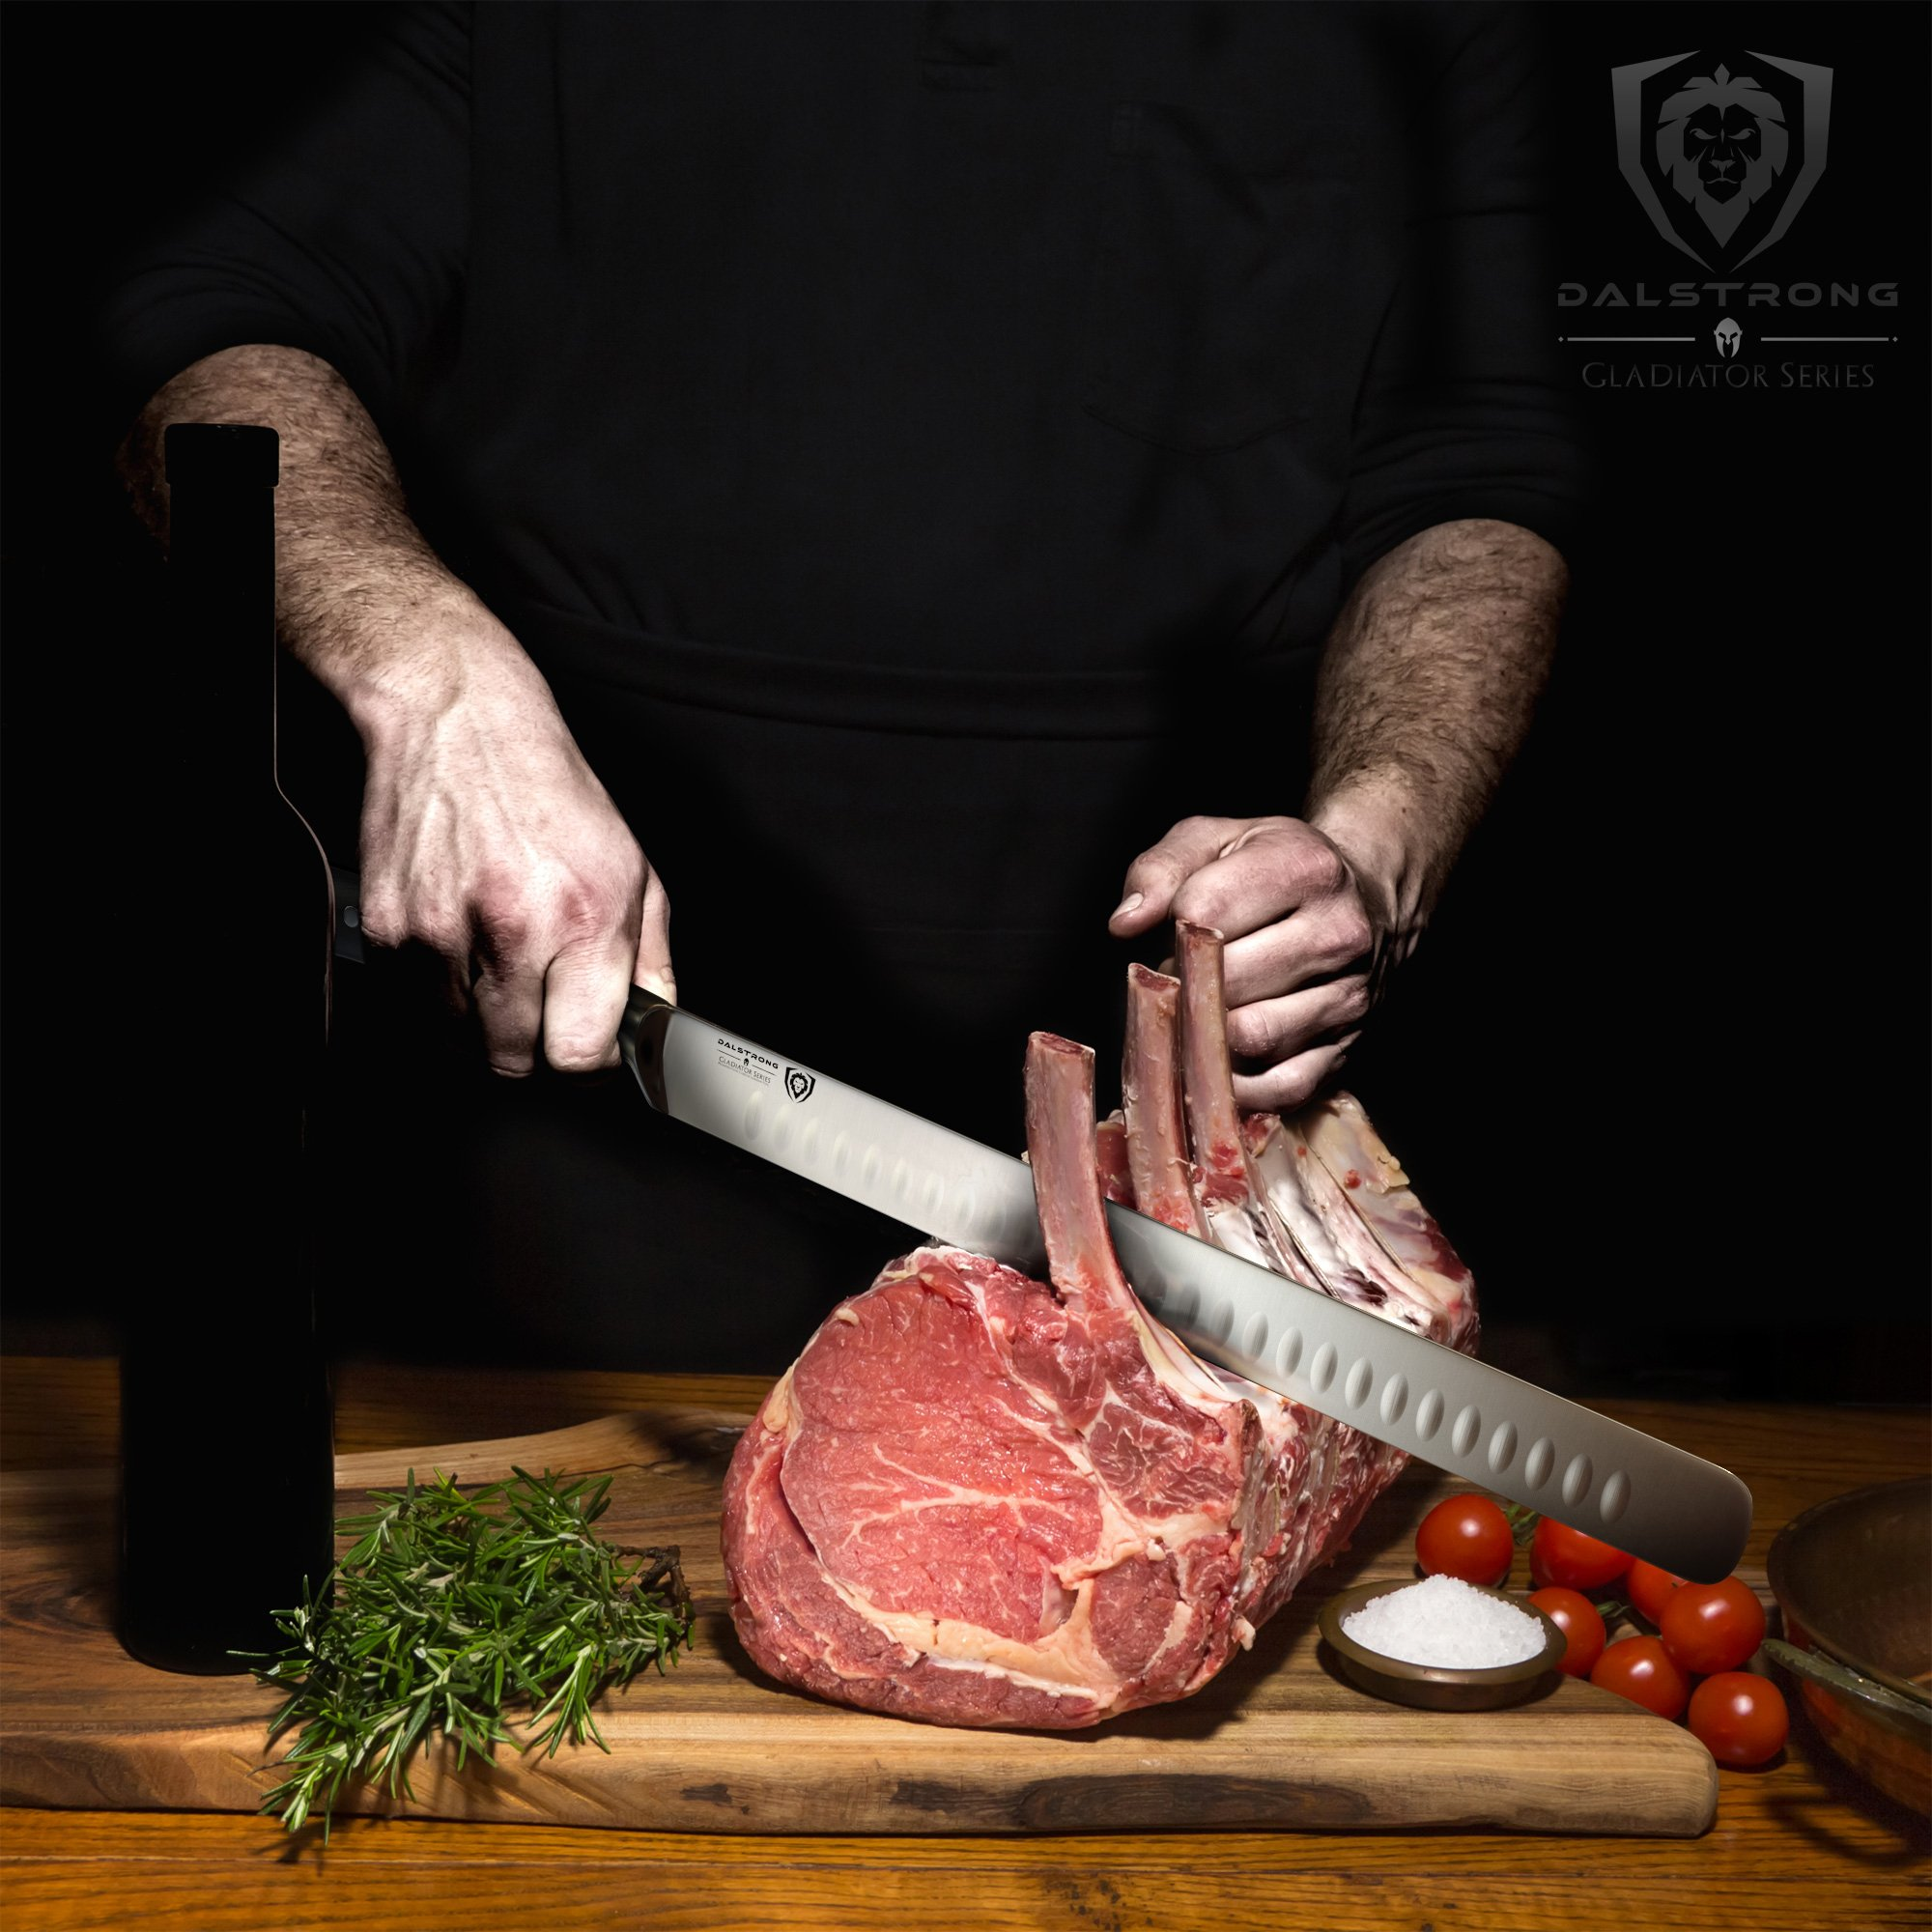 DALSTRONG Slicing Carving Knife - 12'' Granton Edge - Gladiator Series - German HC Steel - w/ Sheath by Dalstrong (Image #3)